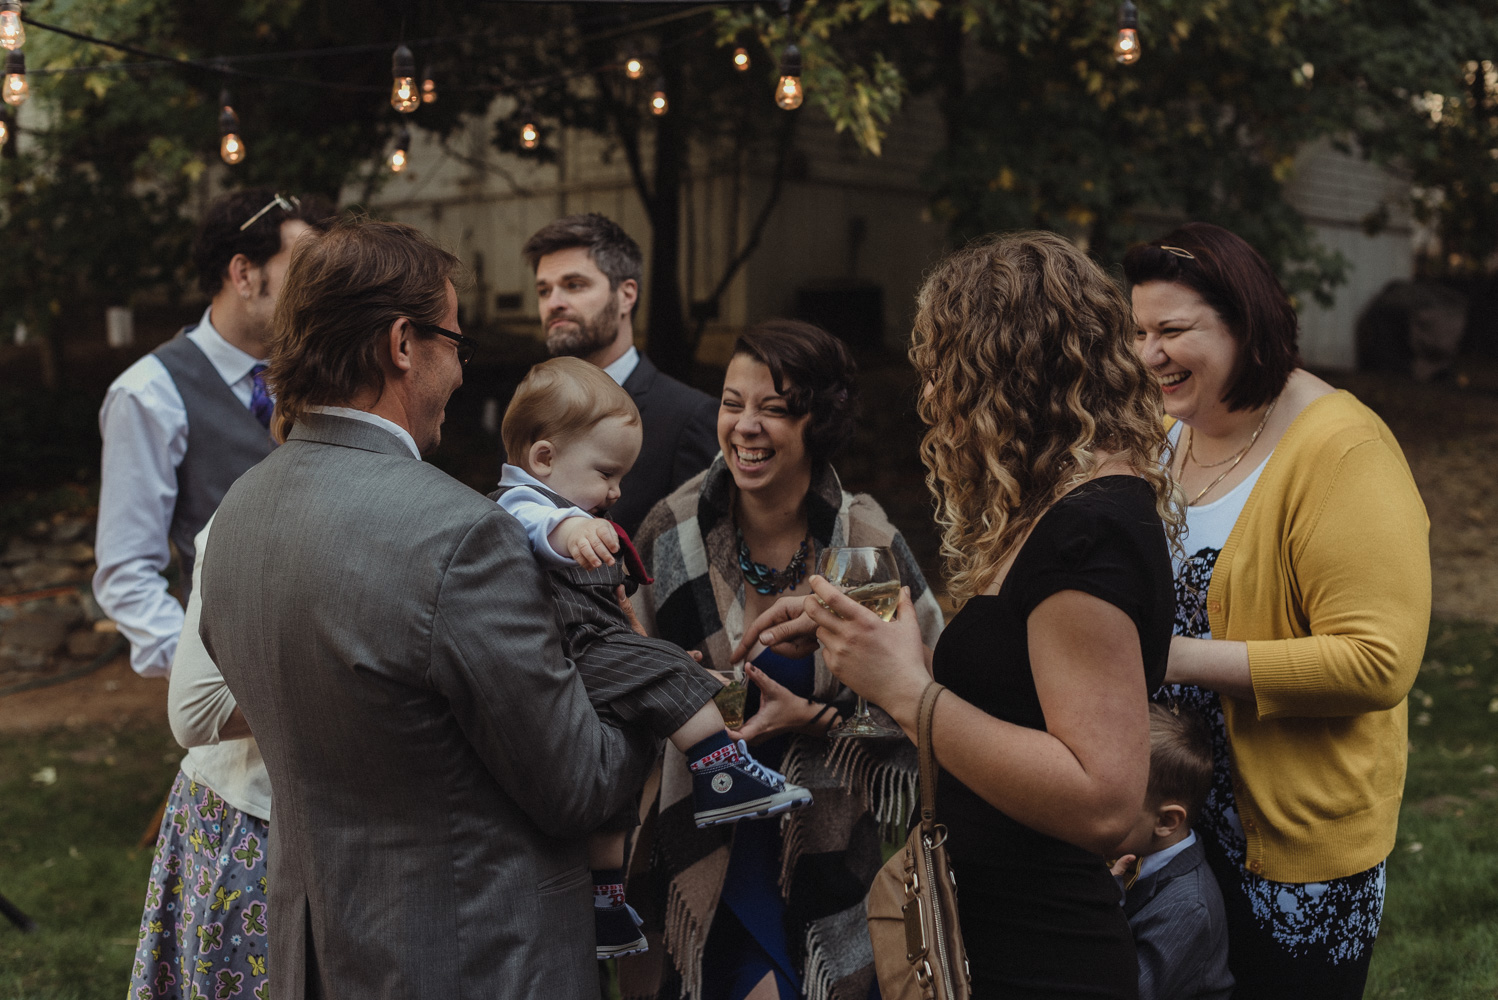 Nevada City wedding reception guests laughing photo